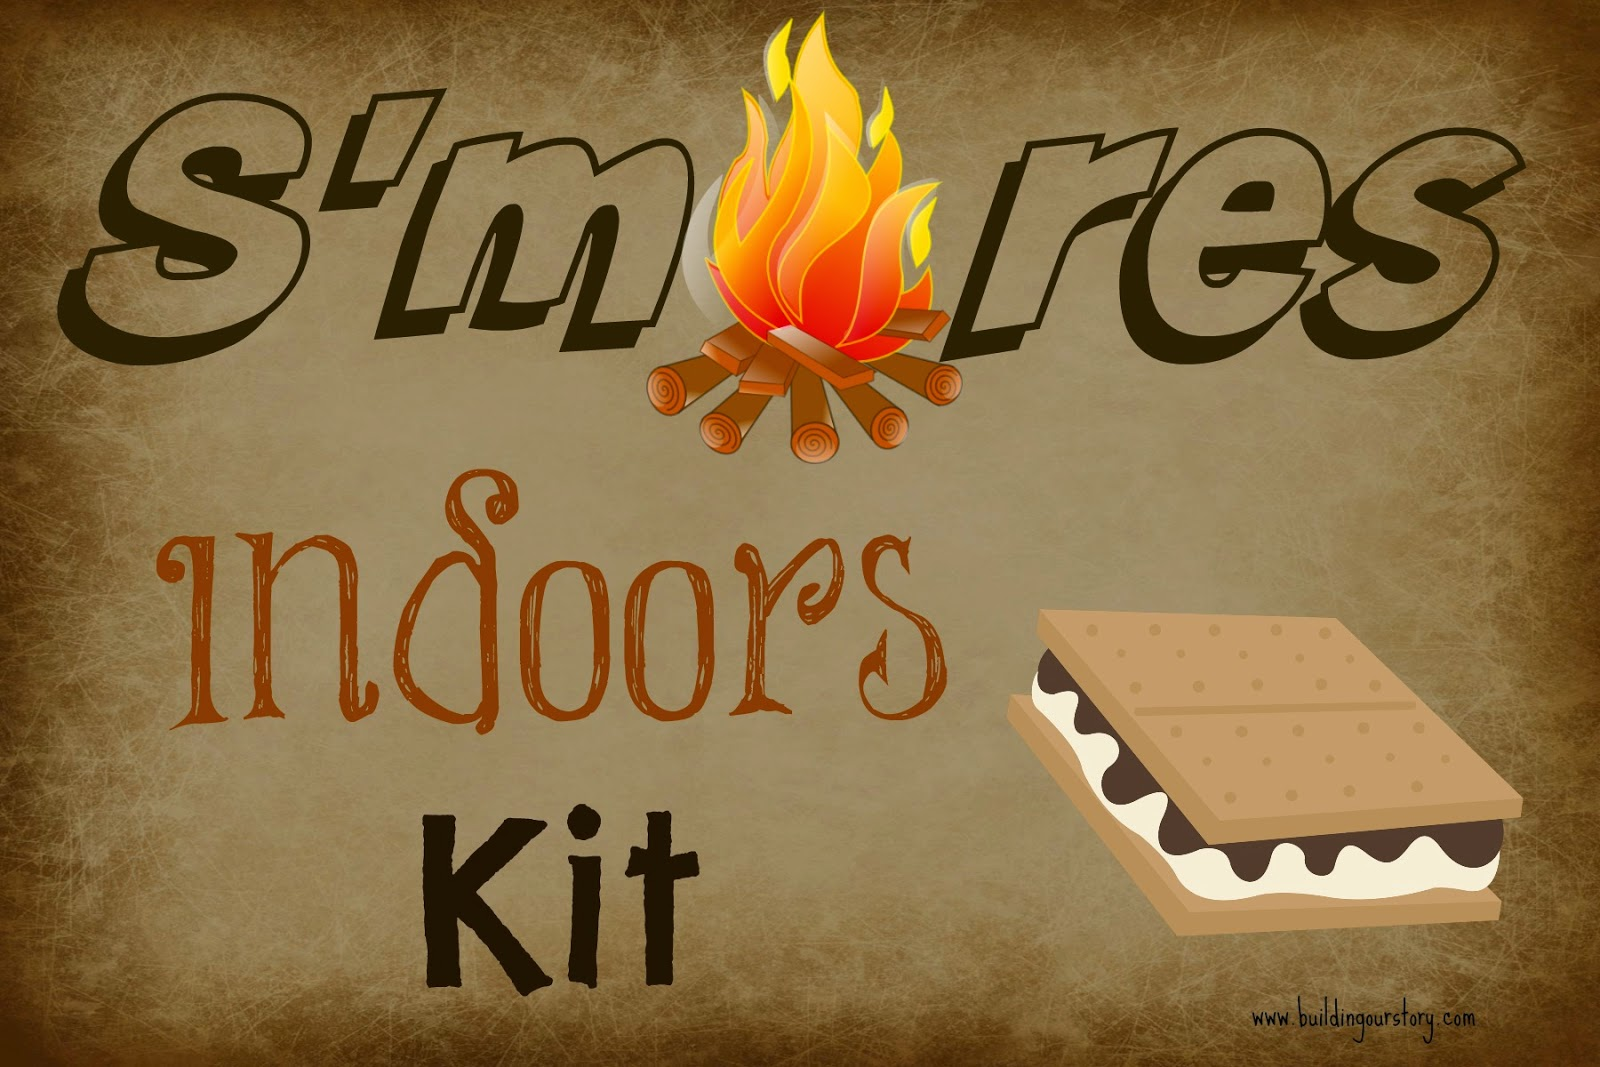 Disney Planes Fire & Rescue: S'mores Indoors Kit |Building Our Story